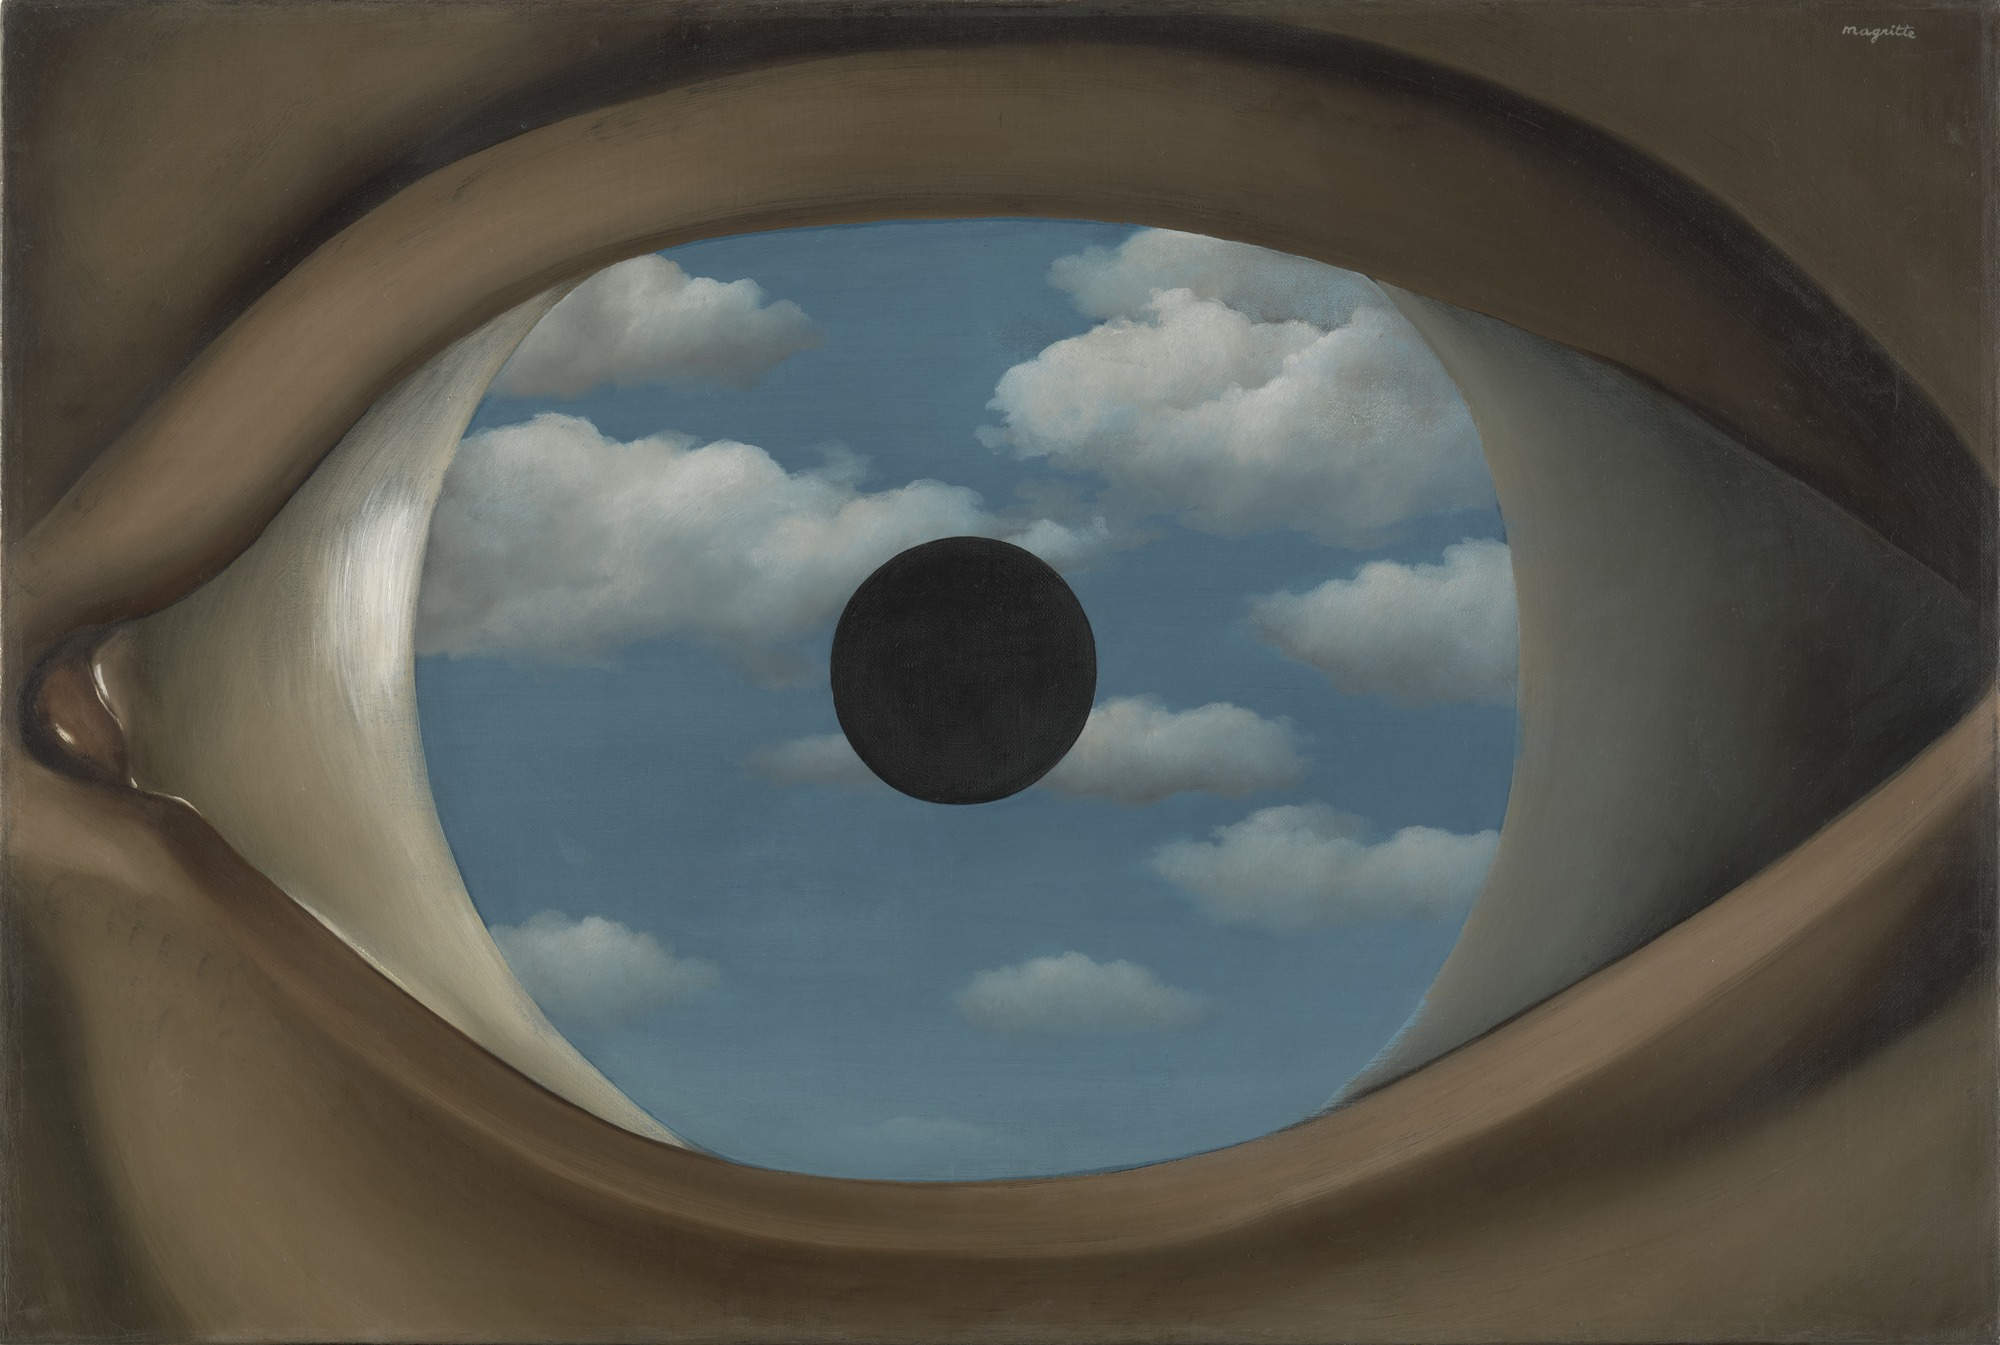 False mirror, Magritte